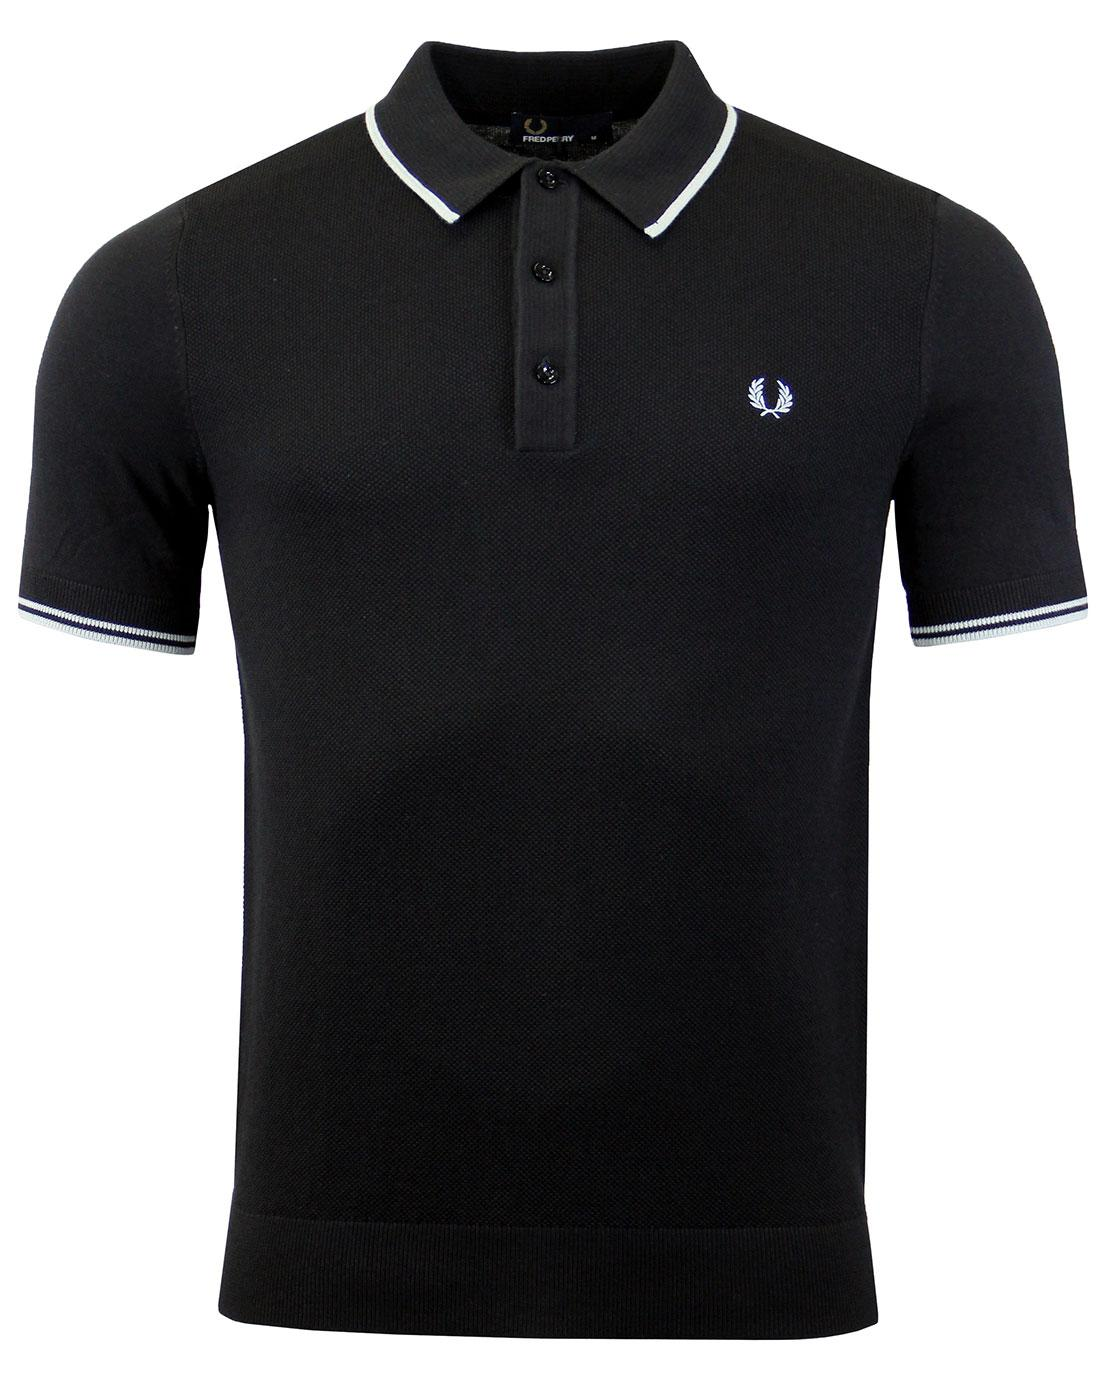 FRED PERRY Tipped Knitted Polo K7200 Black